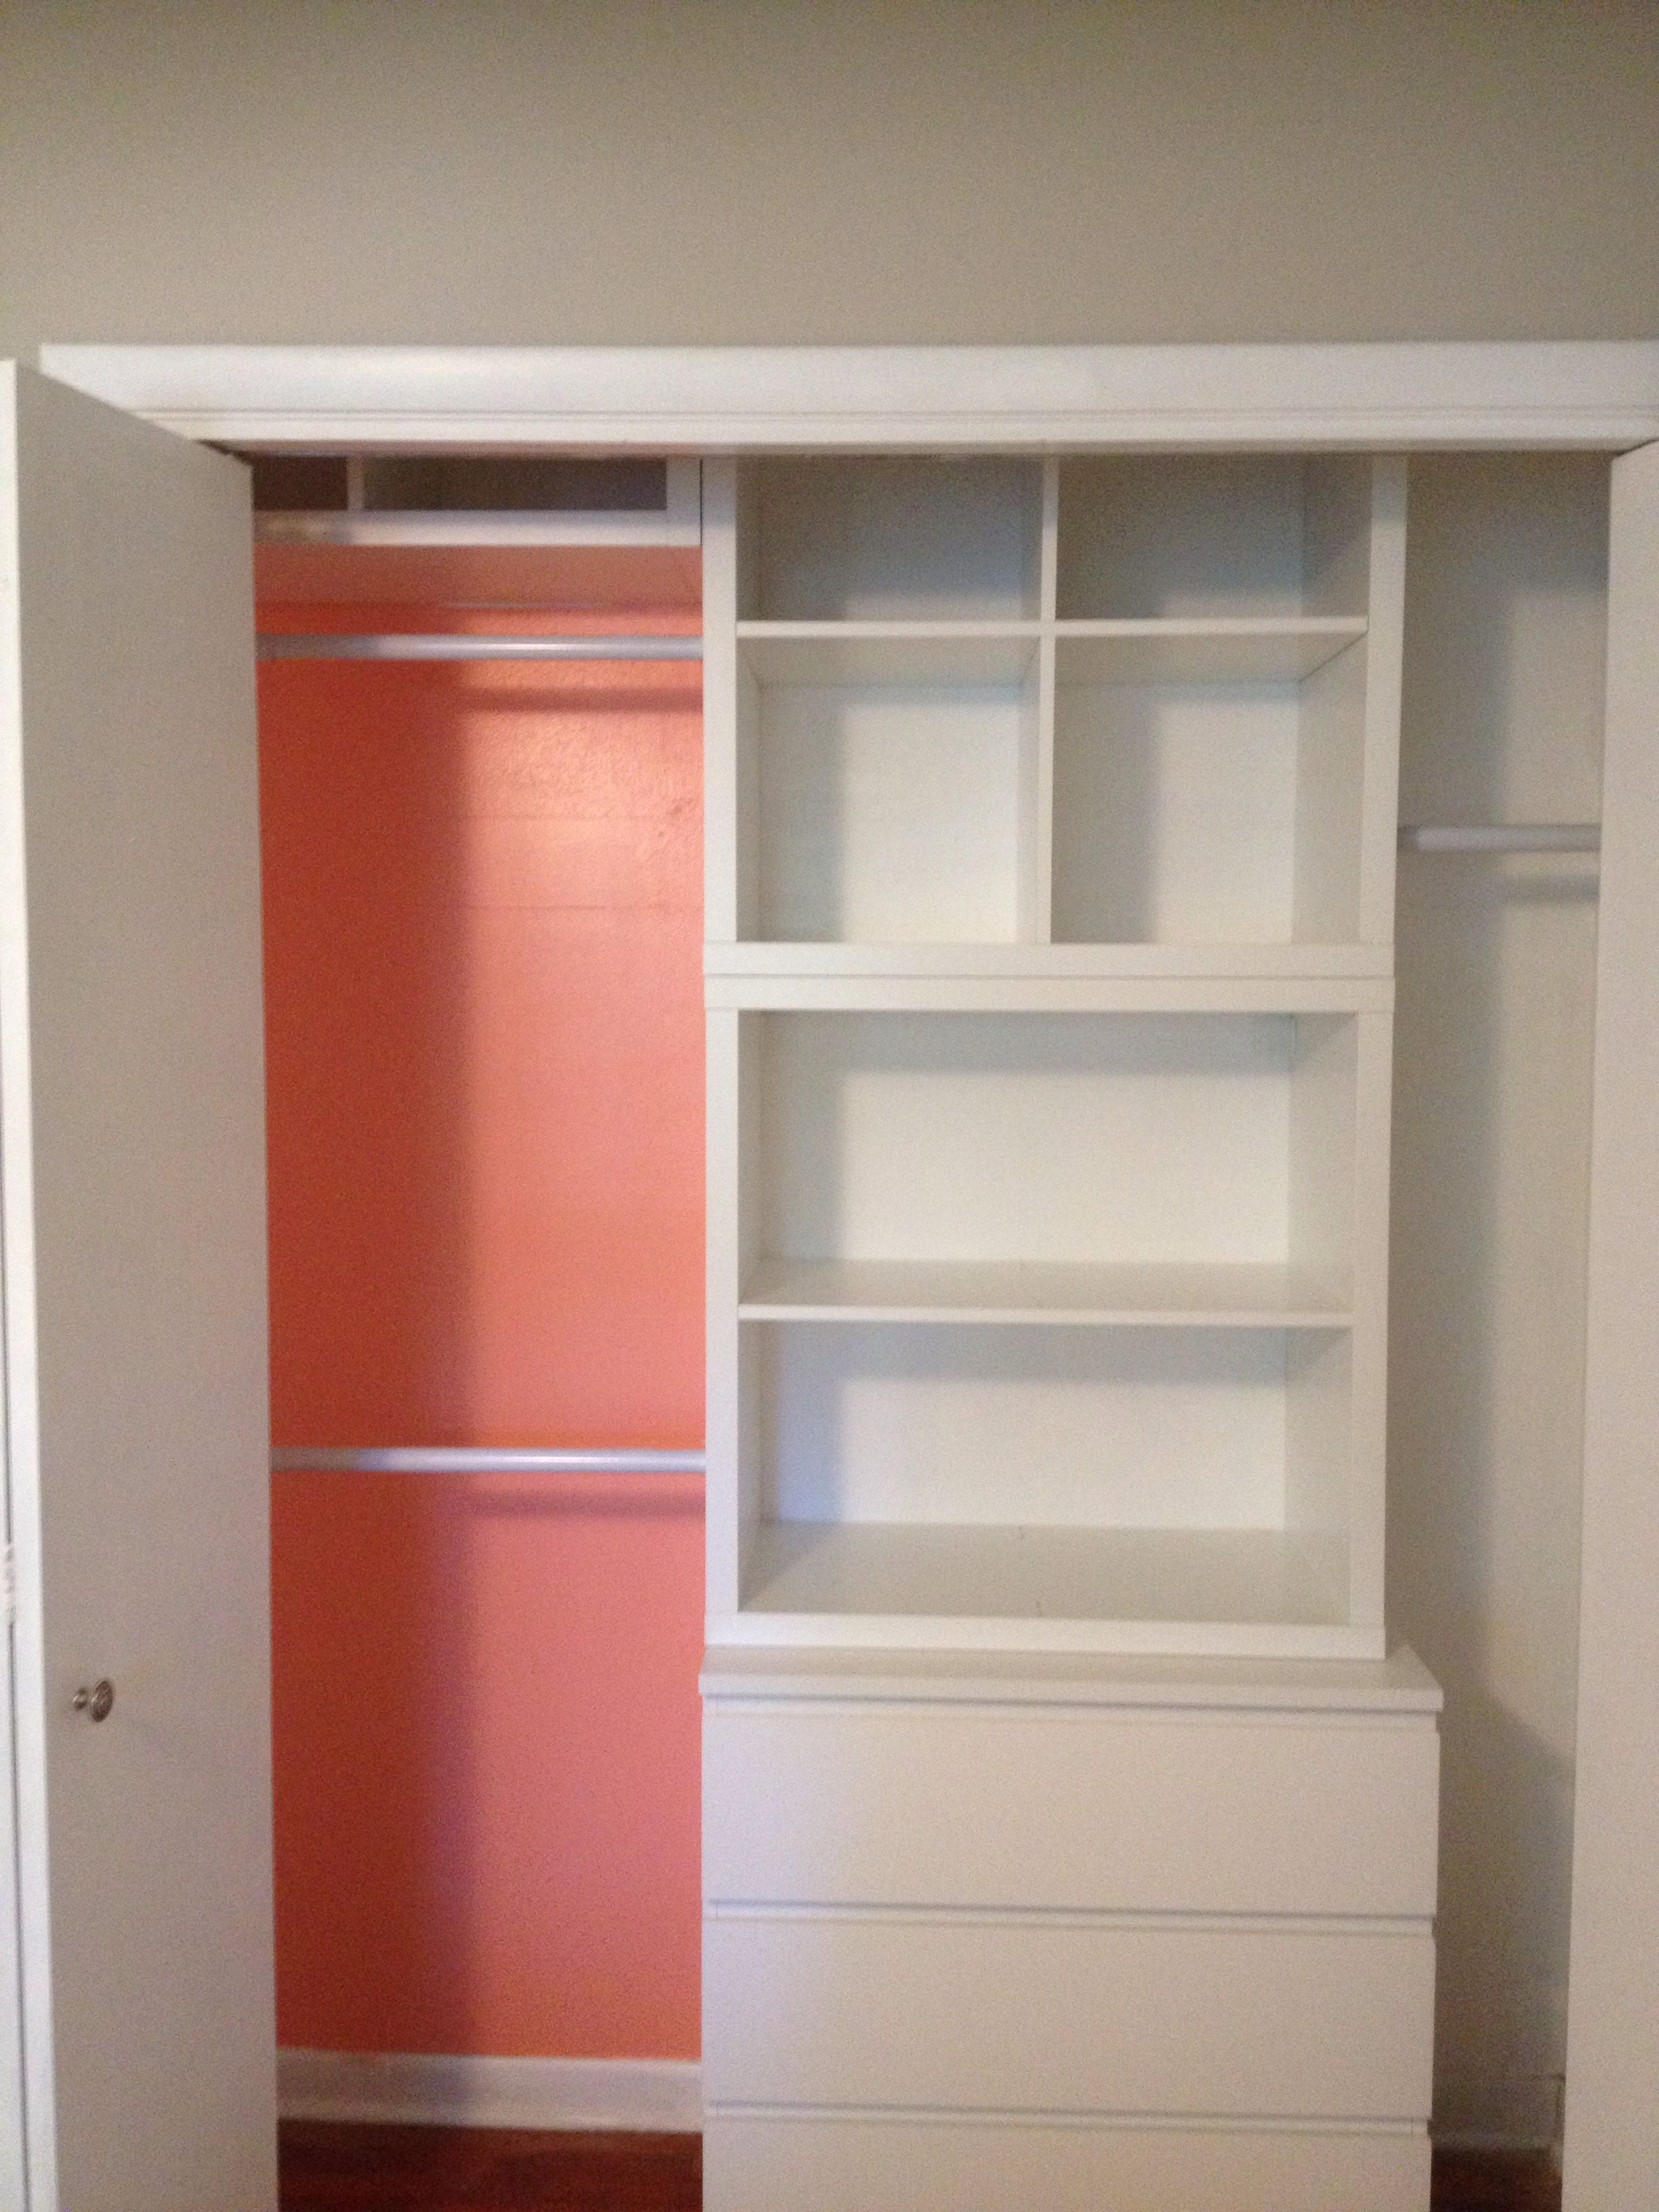 master closet ikea kallax shelving modified ikea malm 3 drawer dresser paint behr citrus. Black Bedroom Furniture Sets. Home Design Ideas